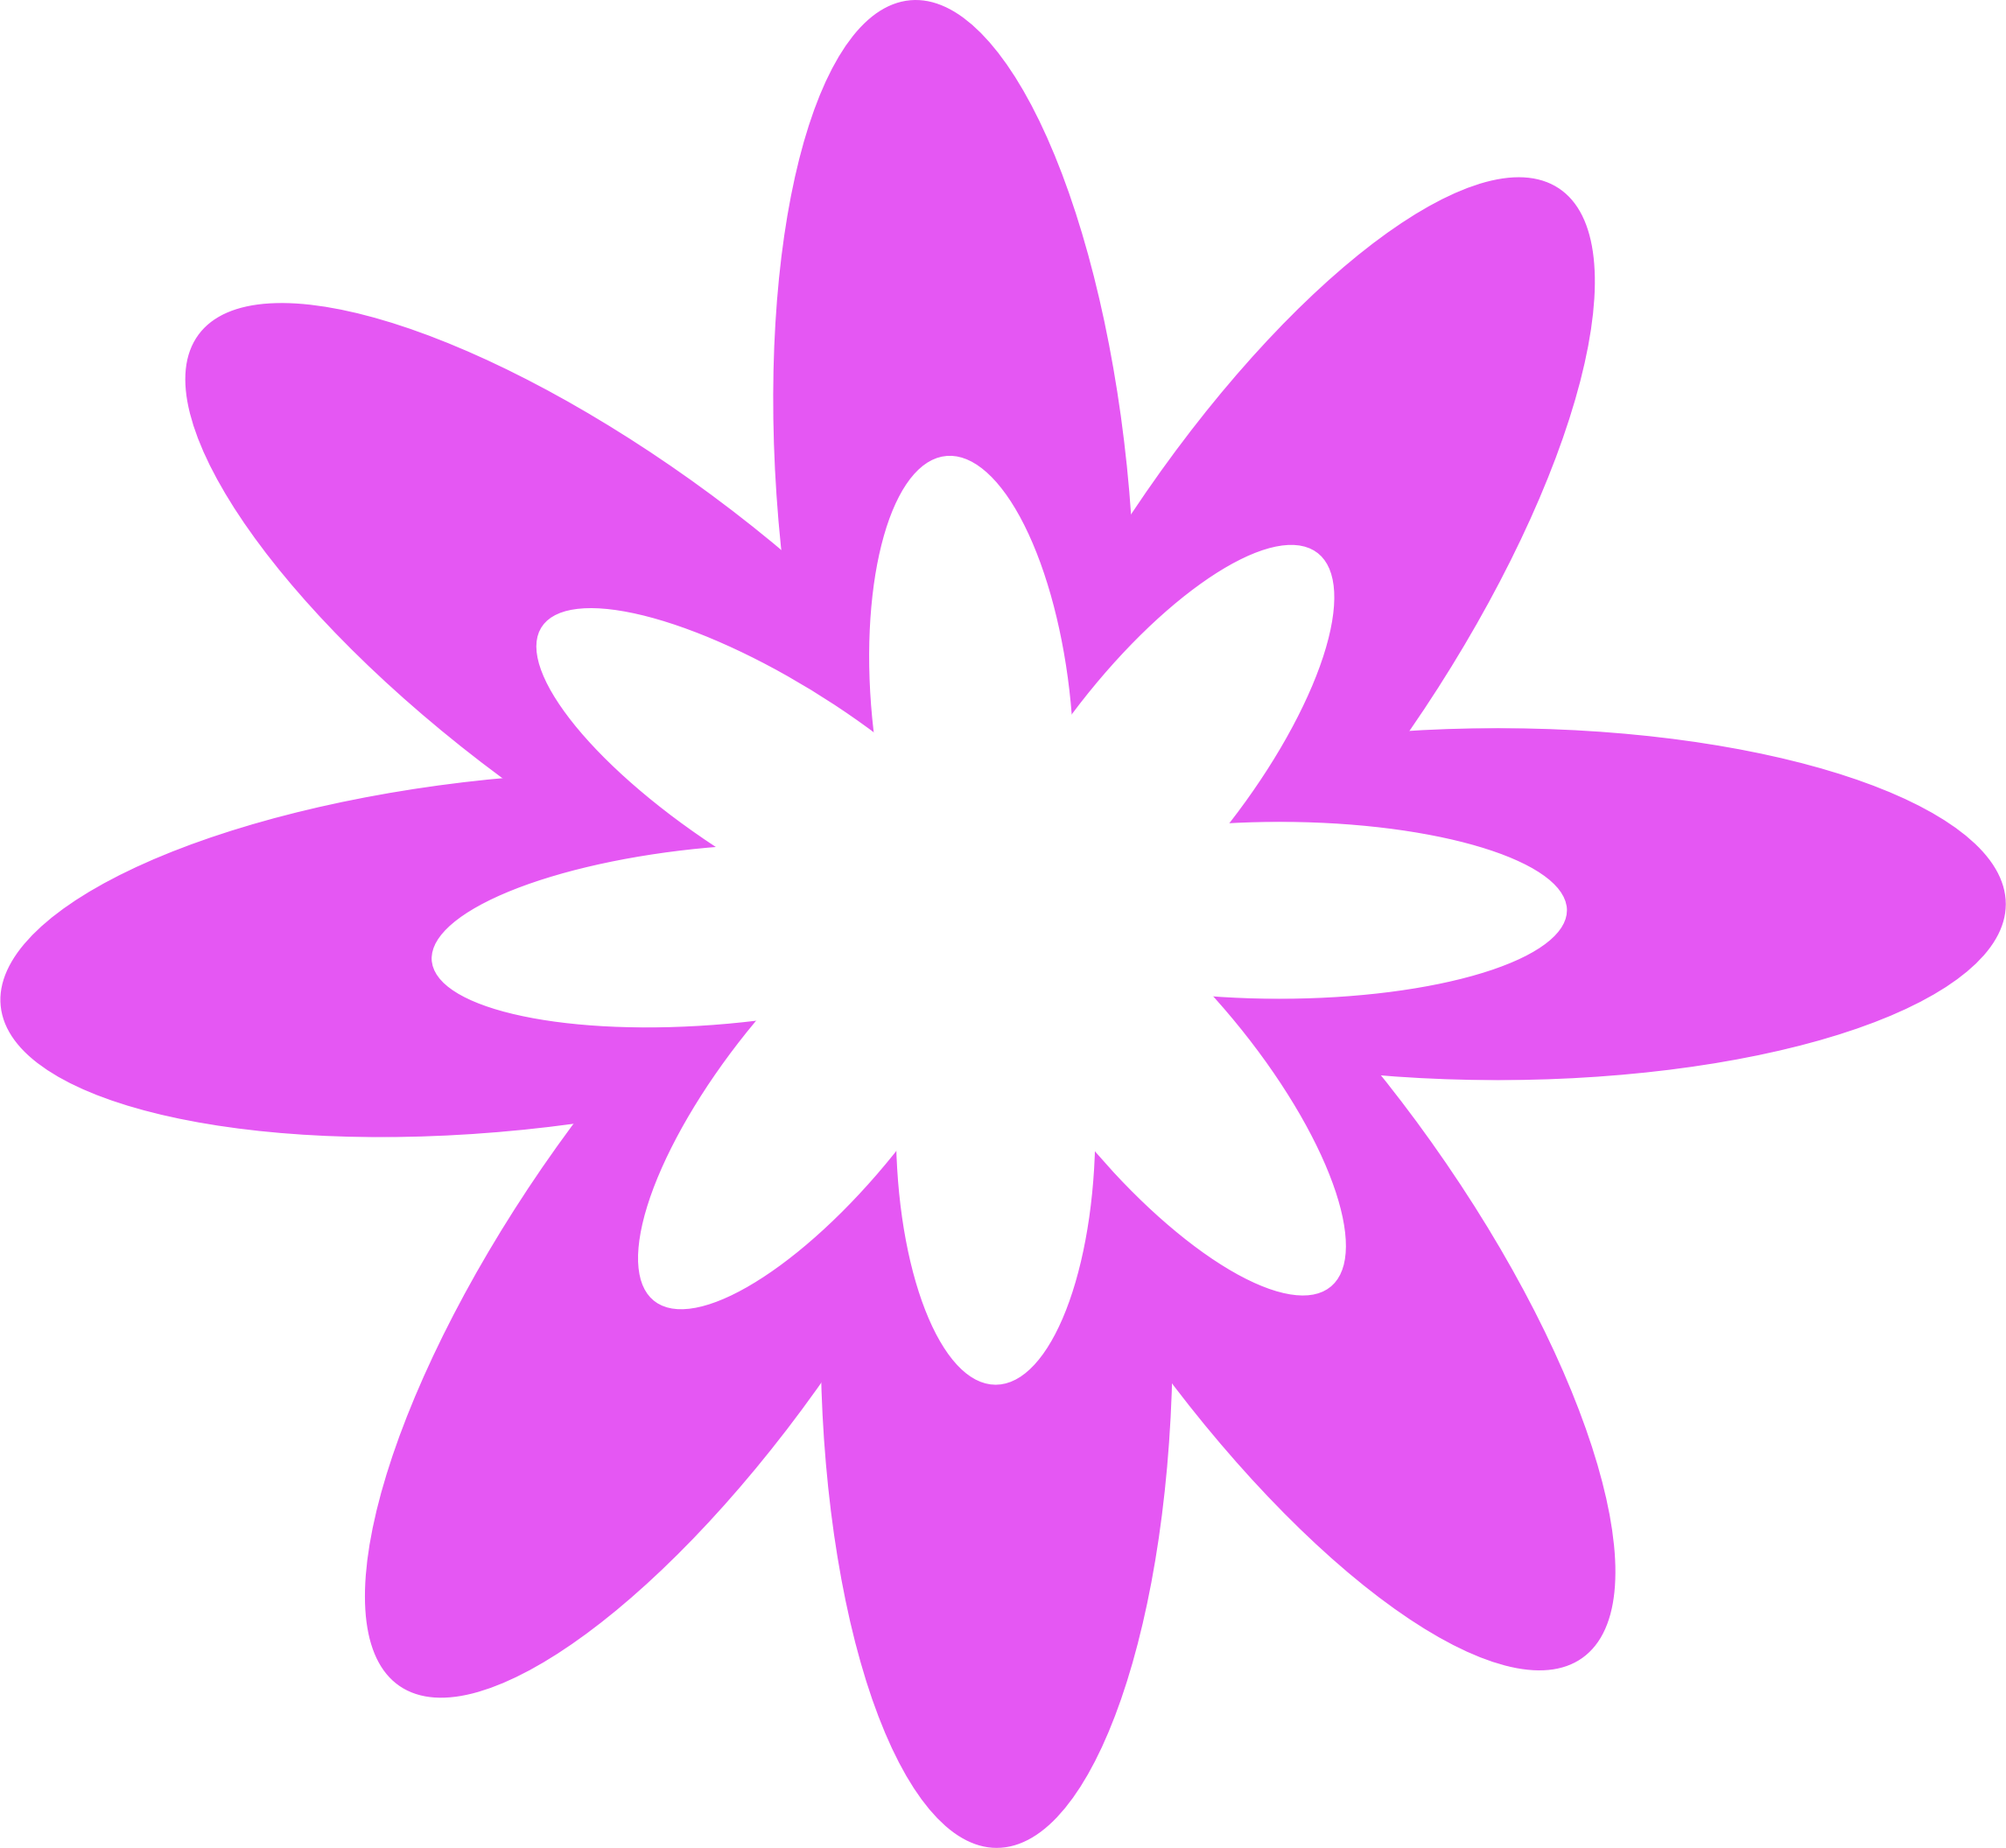 HD This Free Icons Png Design Of Purple Burst Flower.